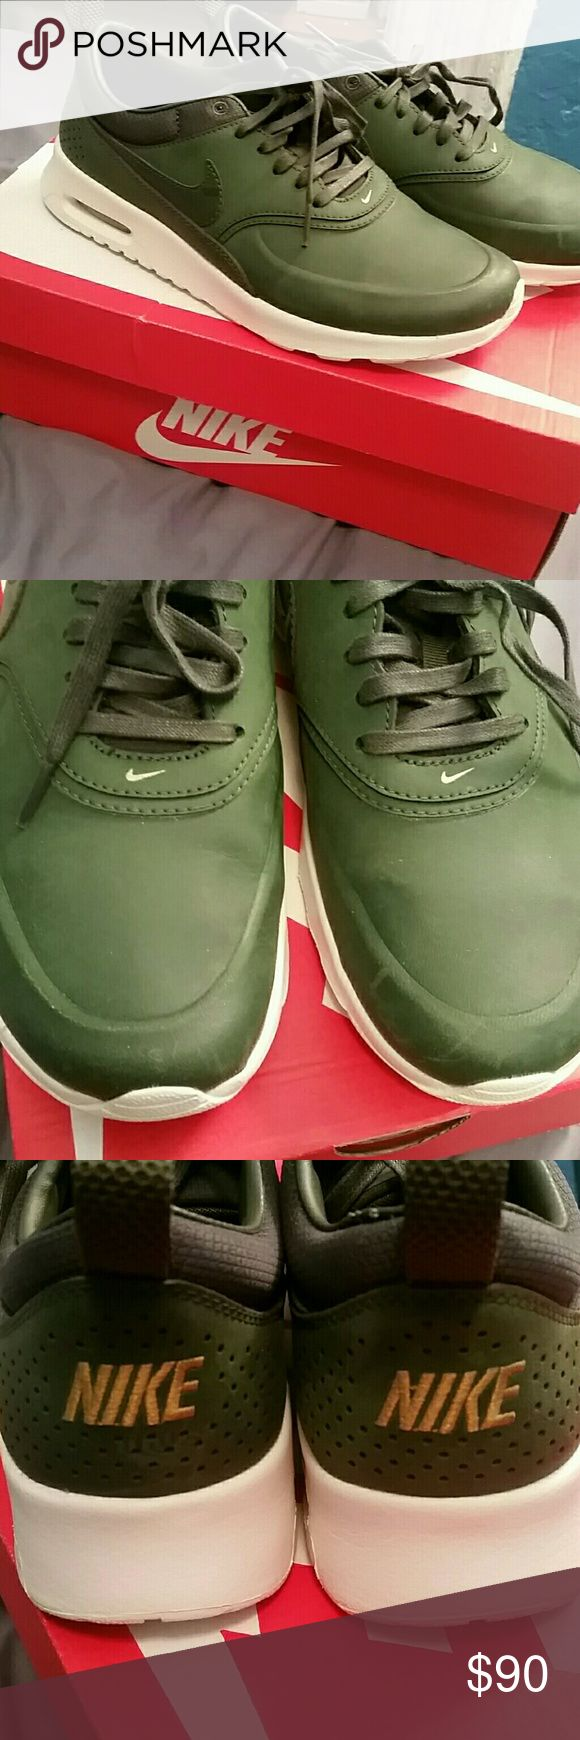 Nike Air Max Thea Beautiful green color. Love these but a bit too tight. See pics for all the details and ask questions! Nike Shoes Sneakers